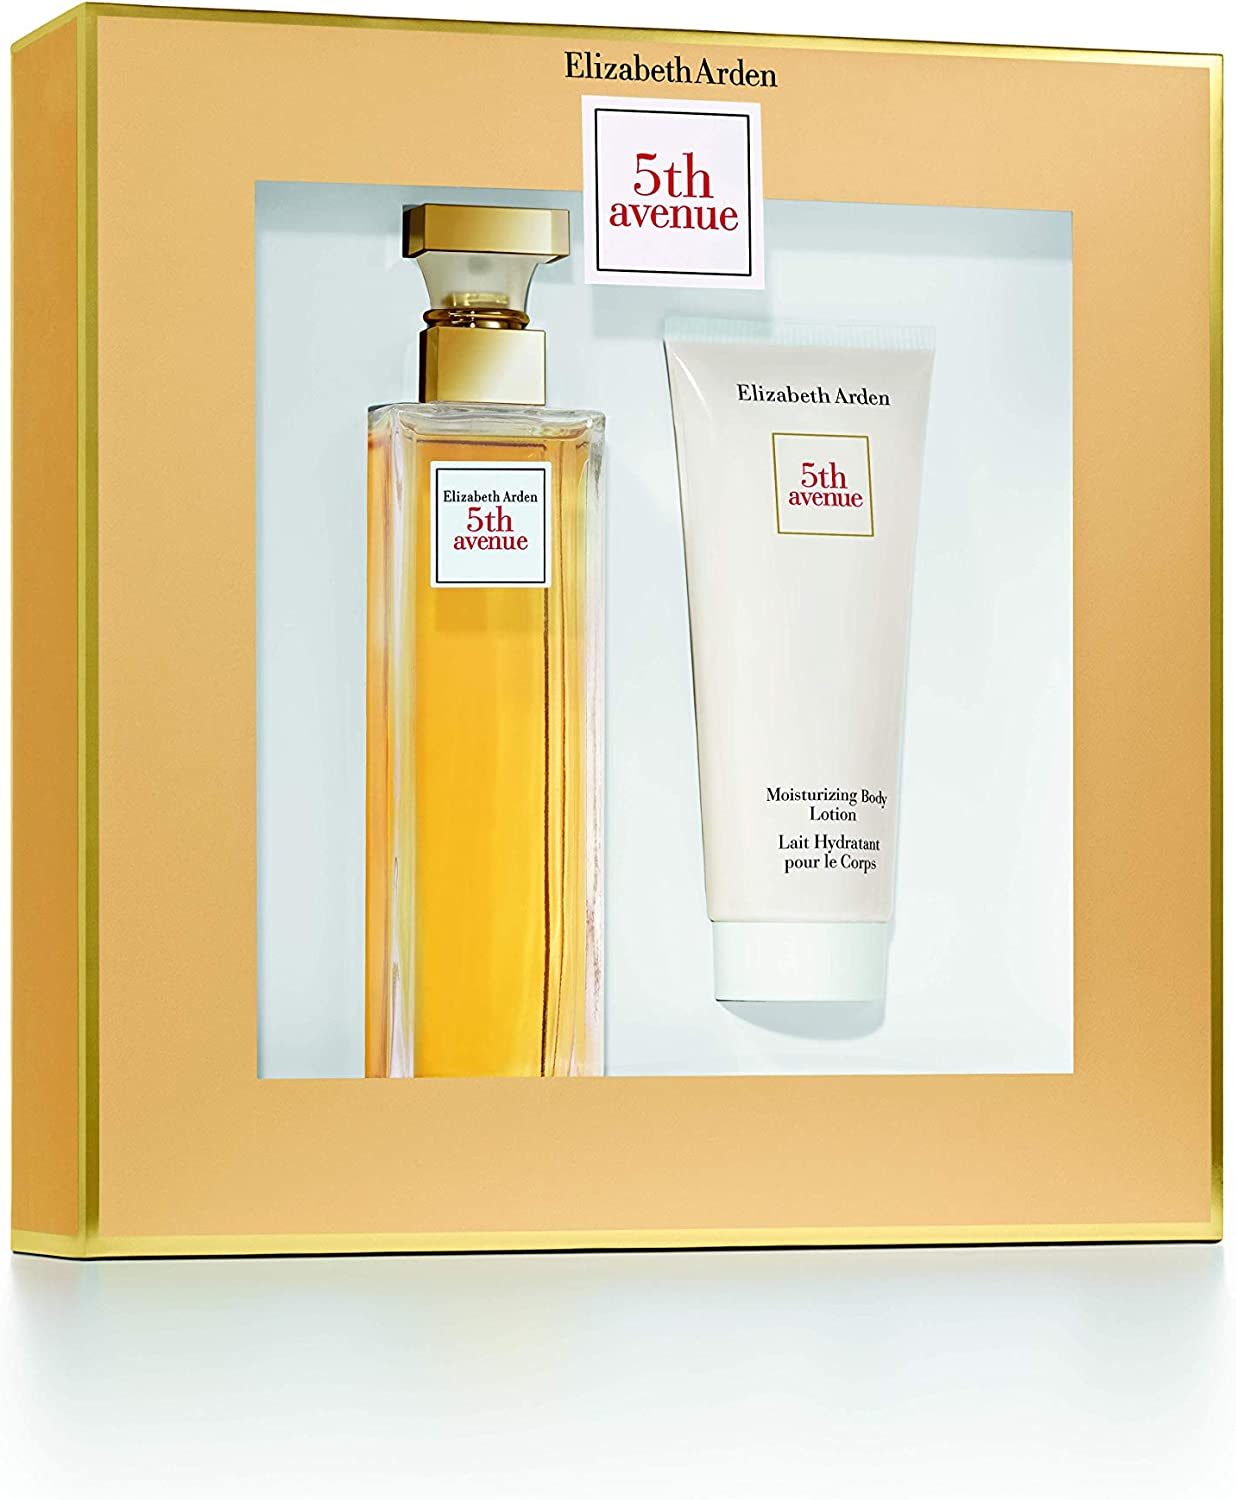 ELIZABETH ARDEN 5 TH AVENUE EDP 125ML VP. + B/L 100 ML SET REGALO: Amazon.es: Belleza